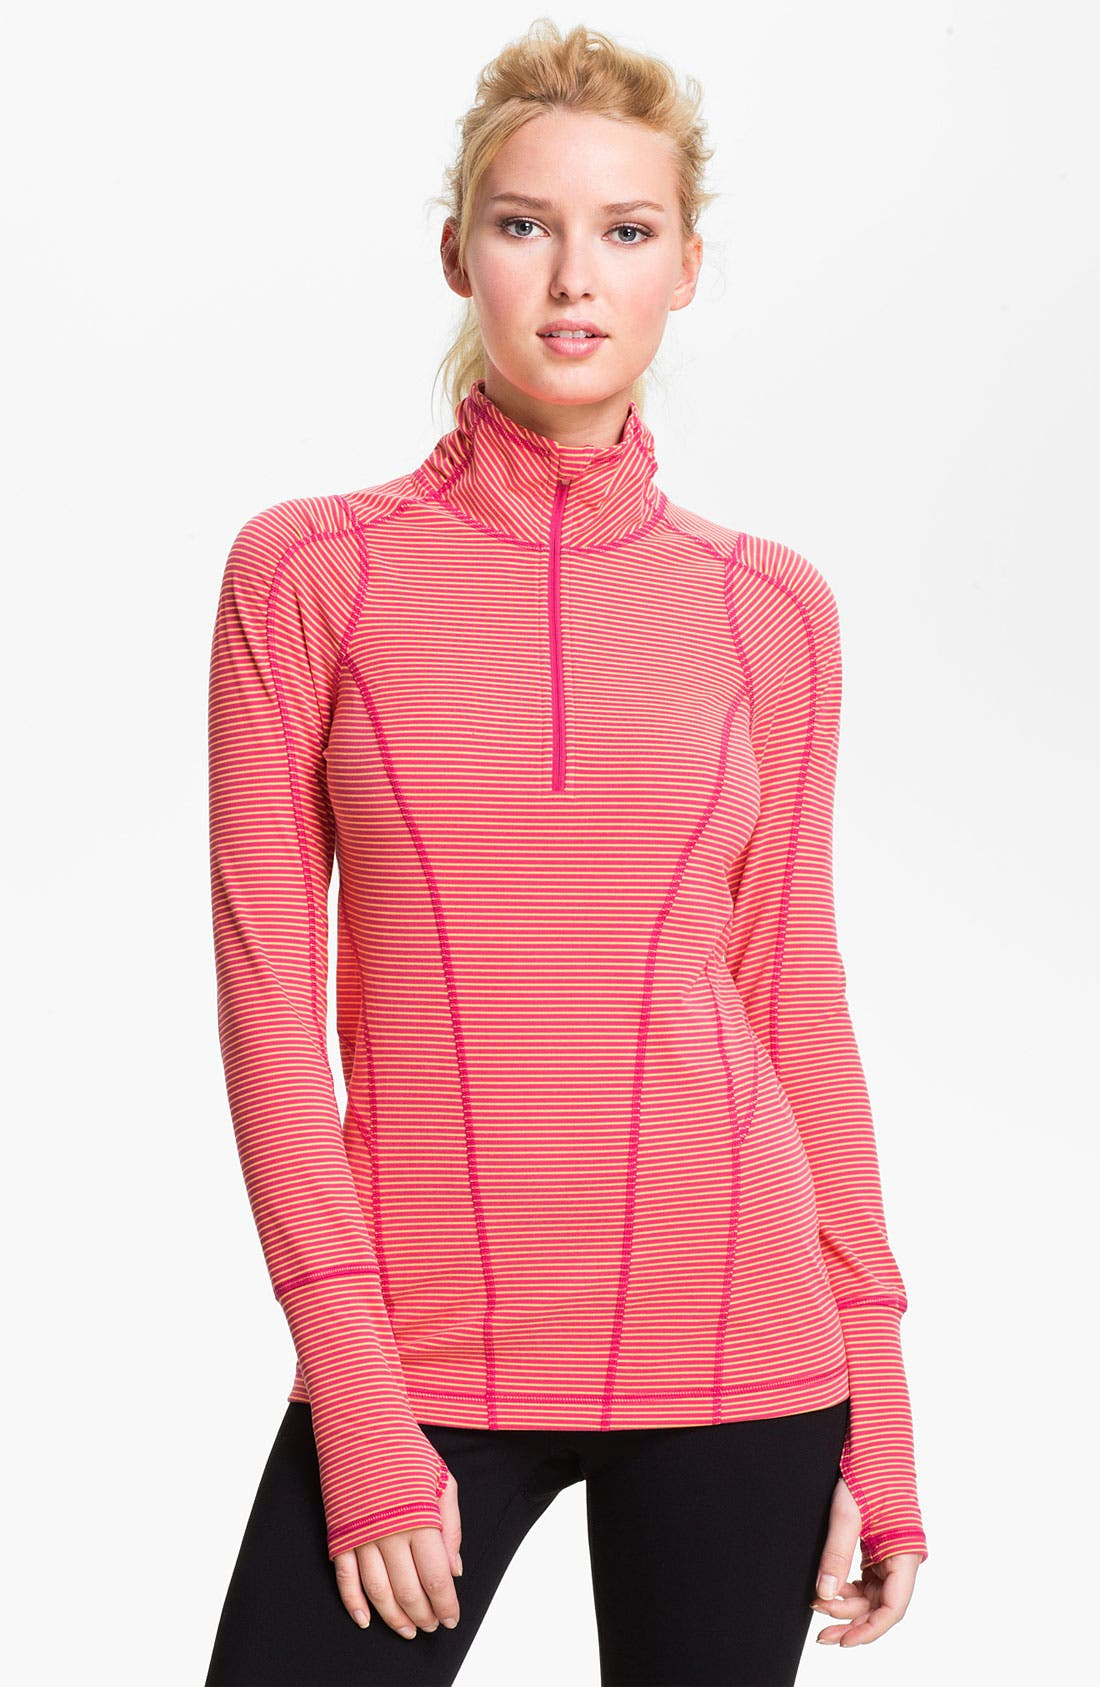 Alternate Image 1 Selected - Zella 'Good Sport' Stripe Half Zip Top